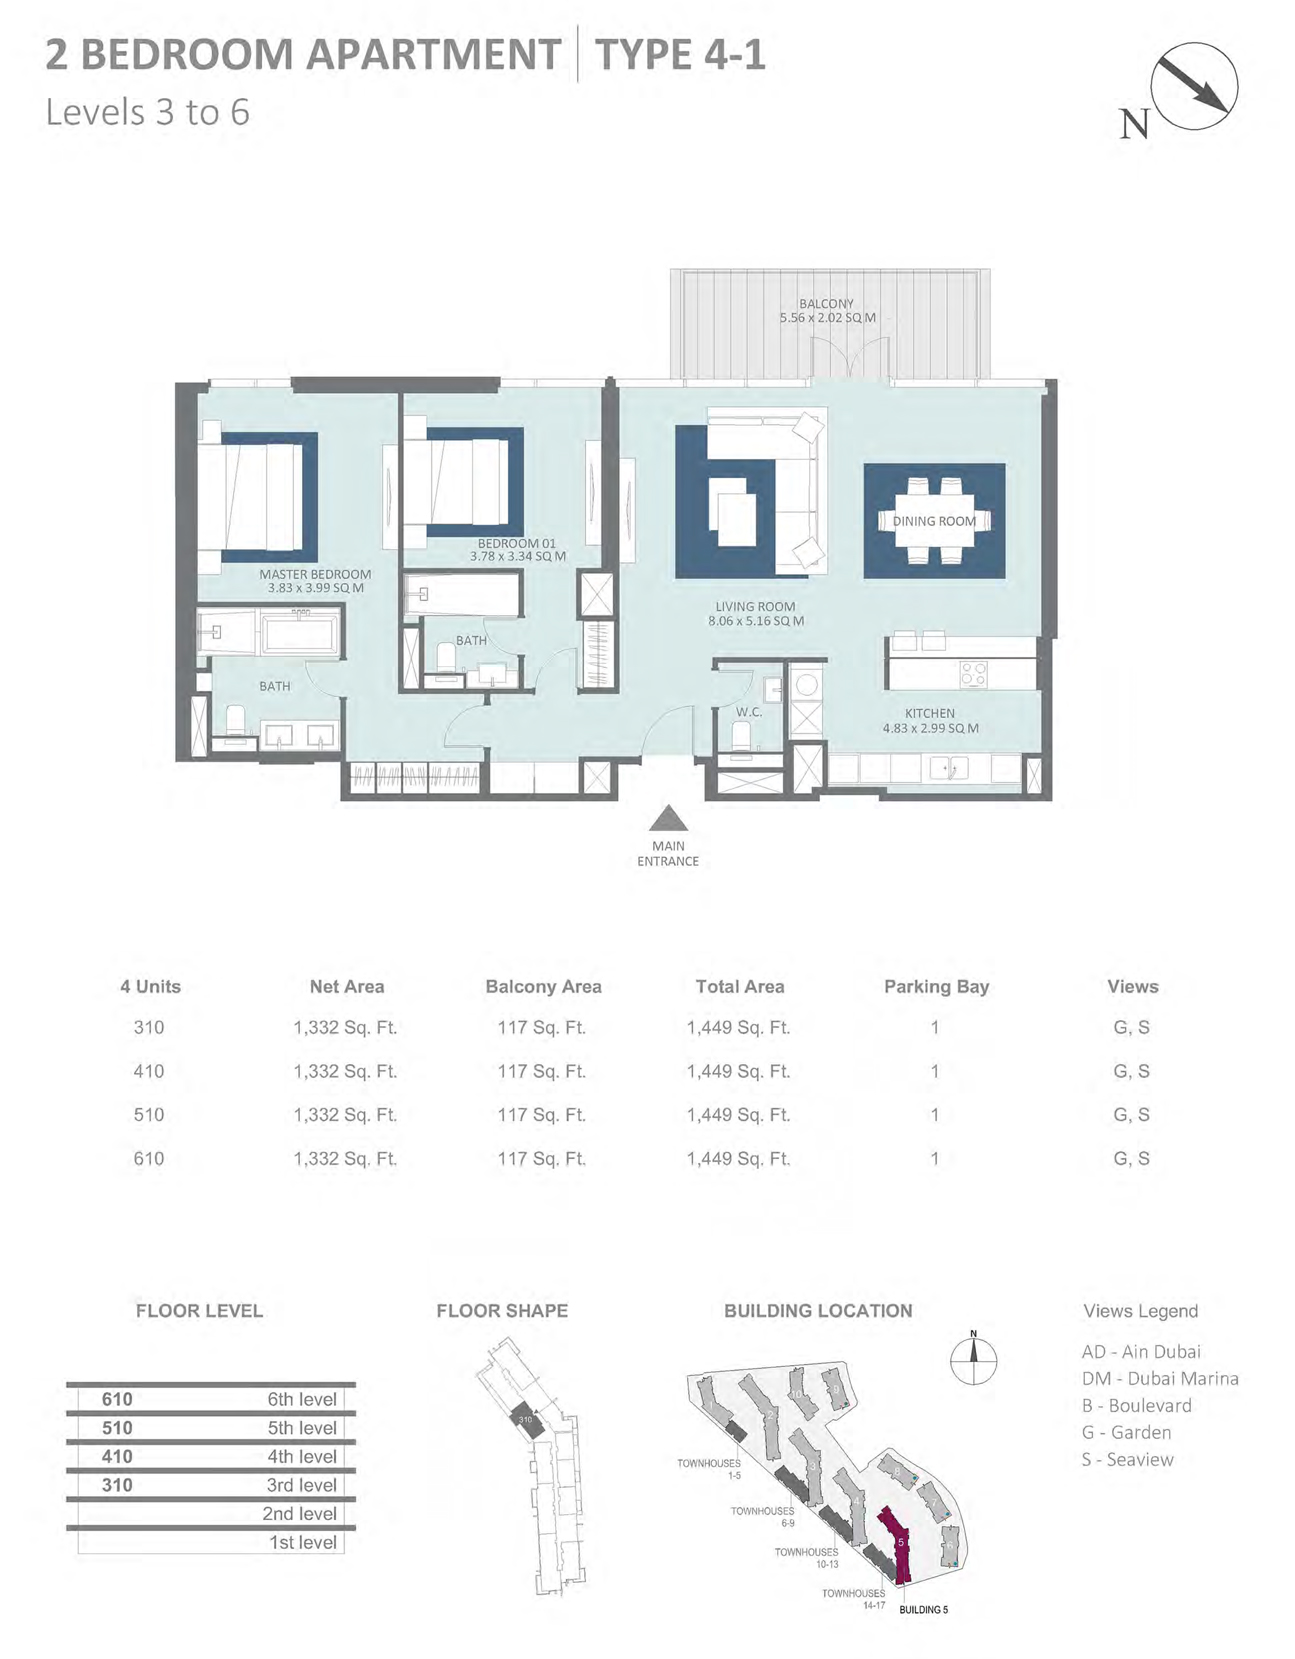 Building 5 - 2 Bedroom Type 4-1 Level 3-6 , Size 1449    sq. ft.